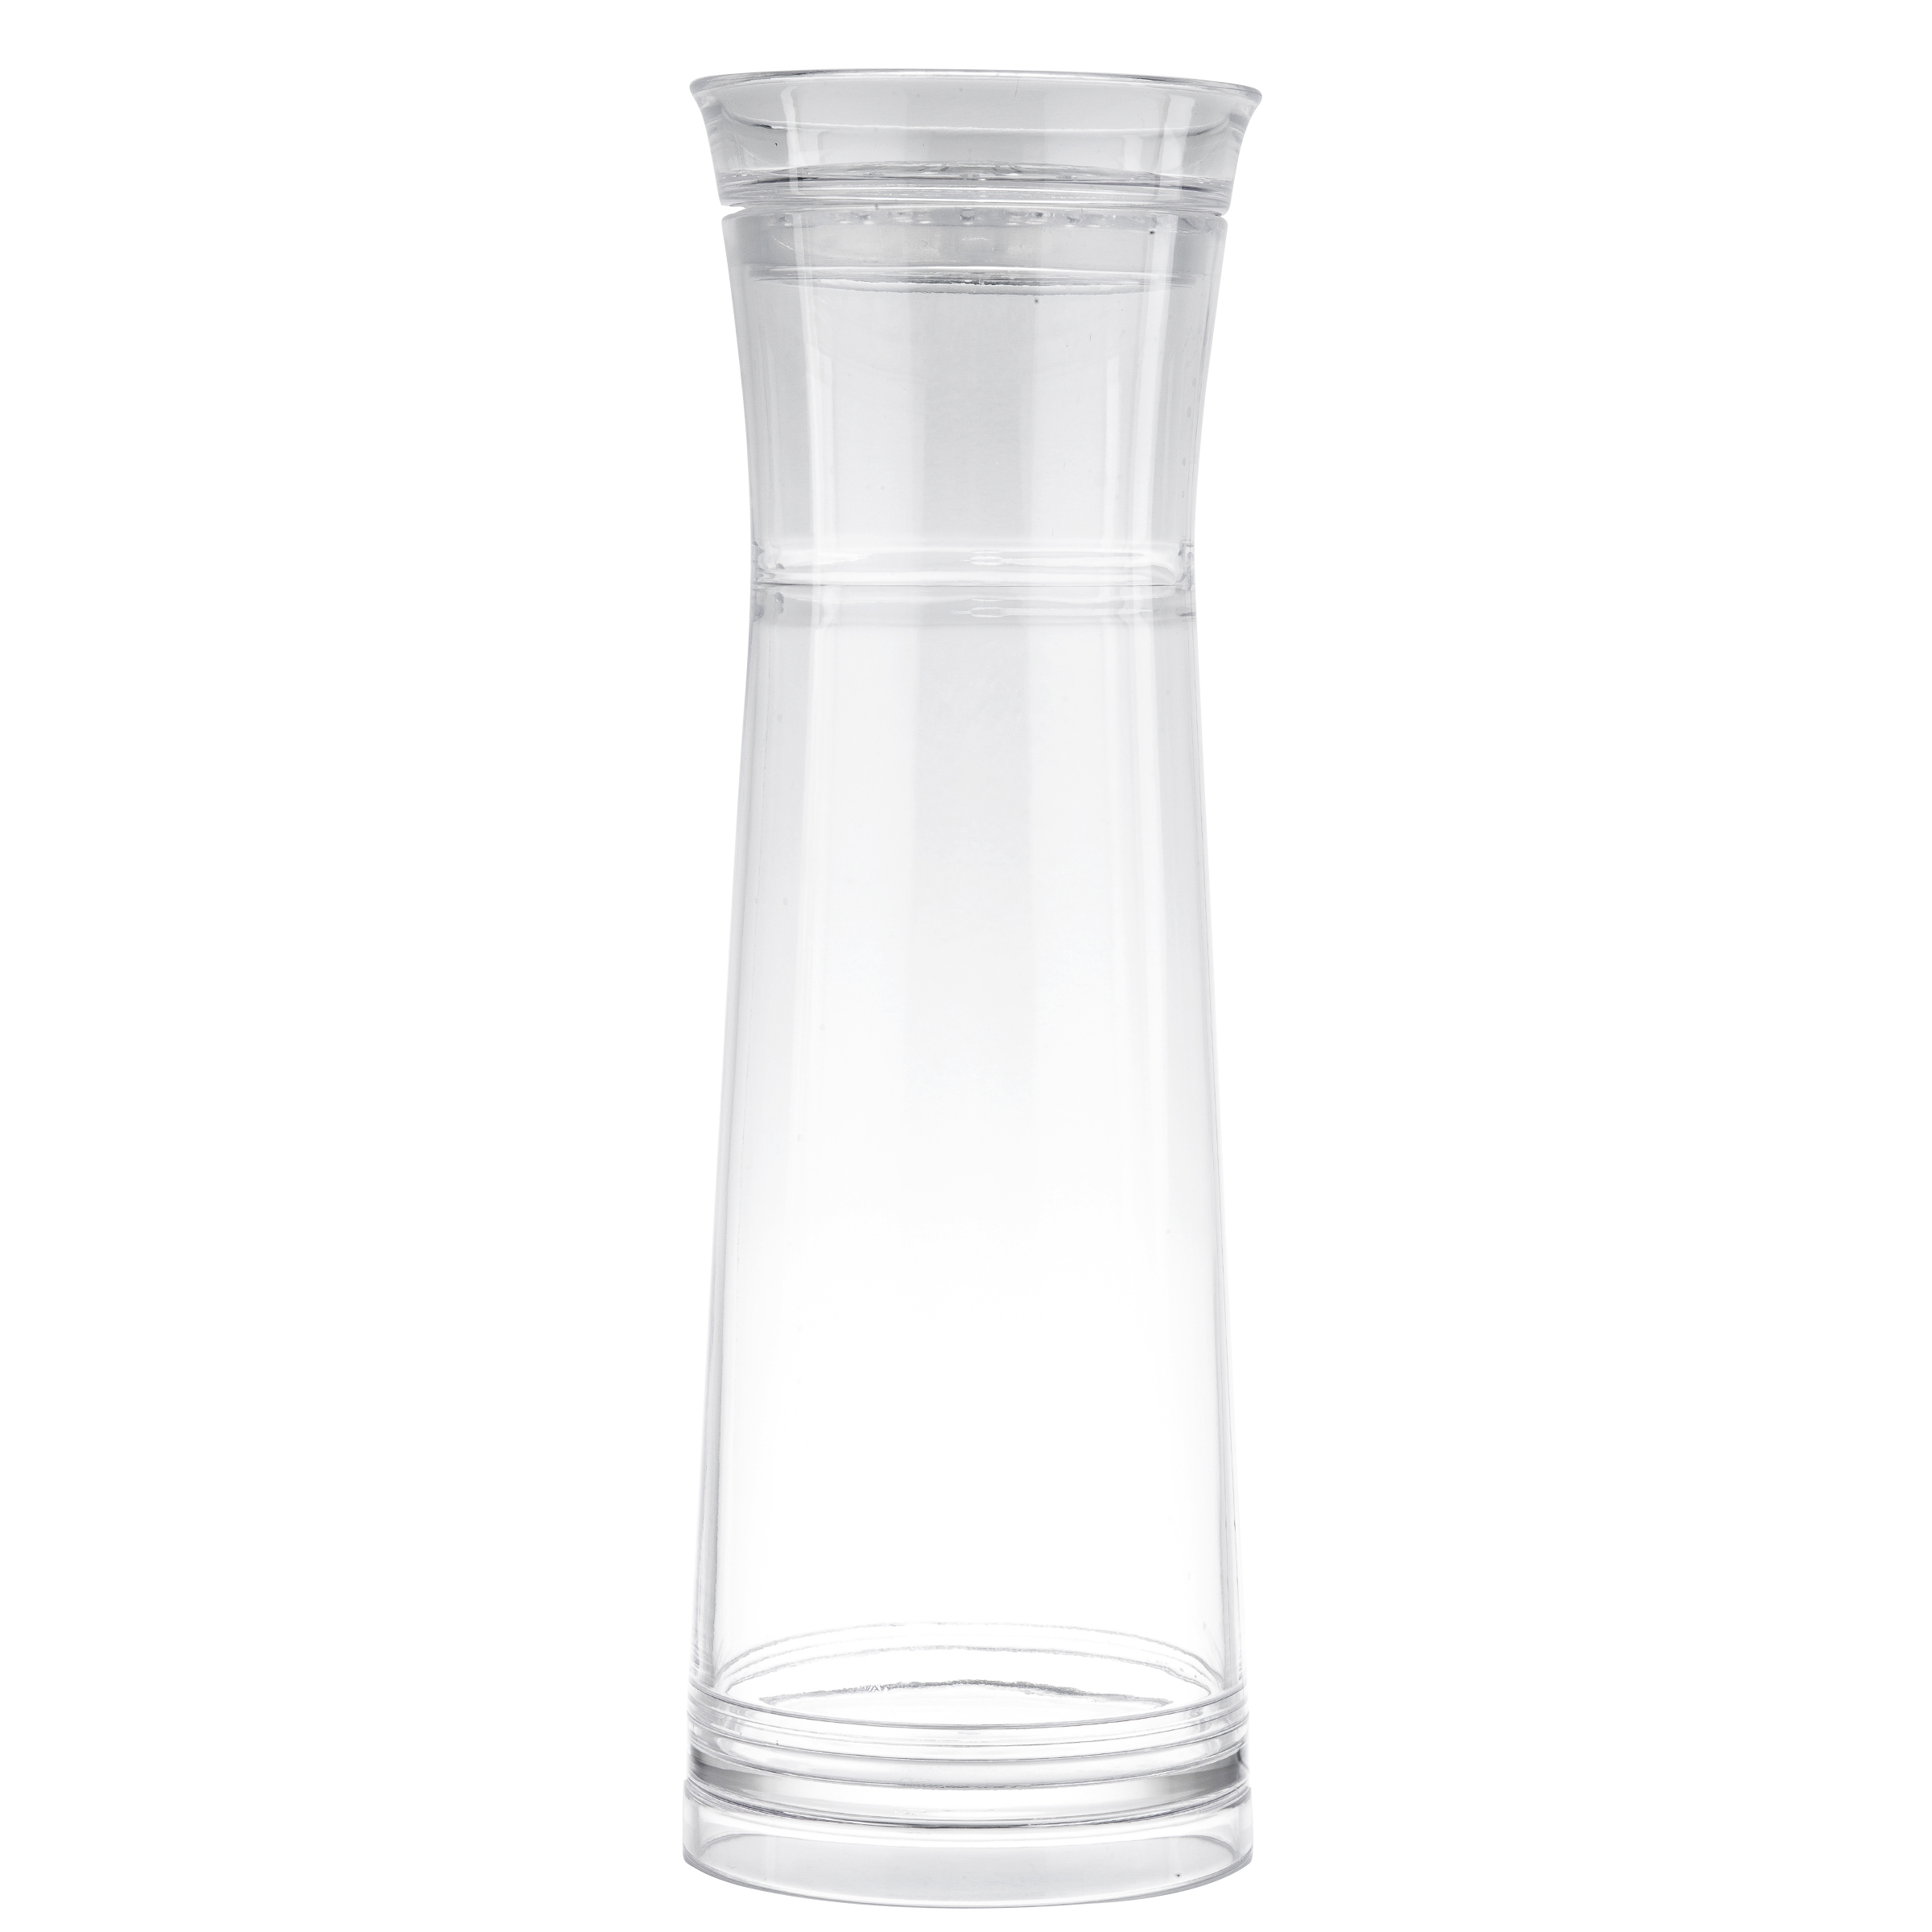 TableCraft Products 10111 cold beverage pitchers & servers